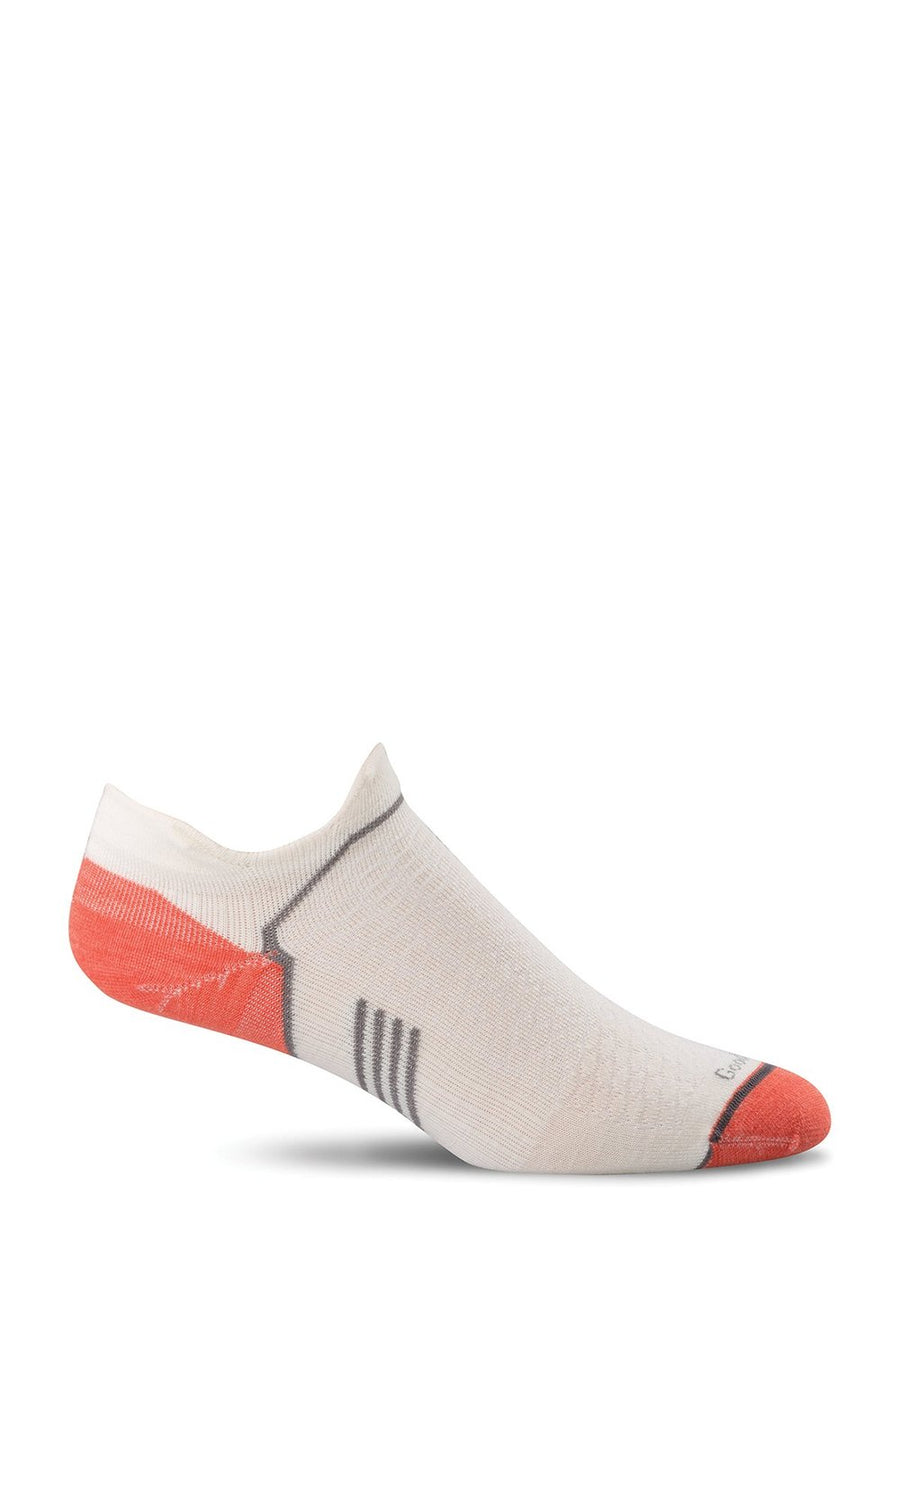 Sockwell Women's Incline Ultra Light Micro